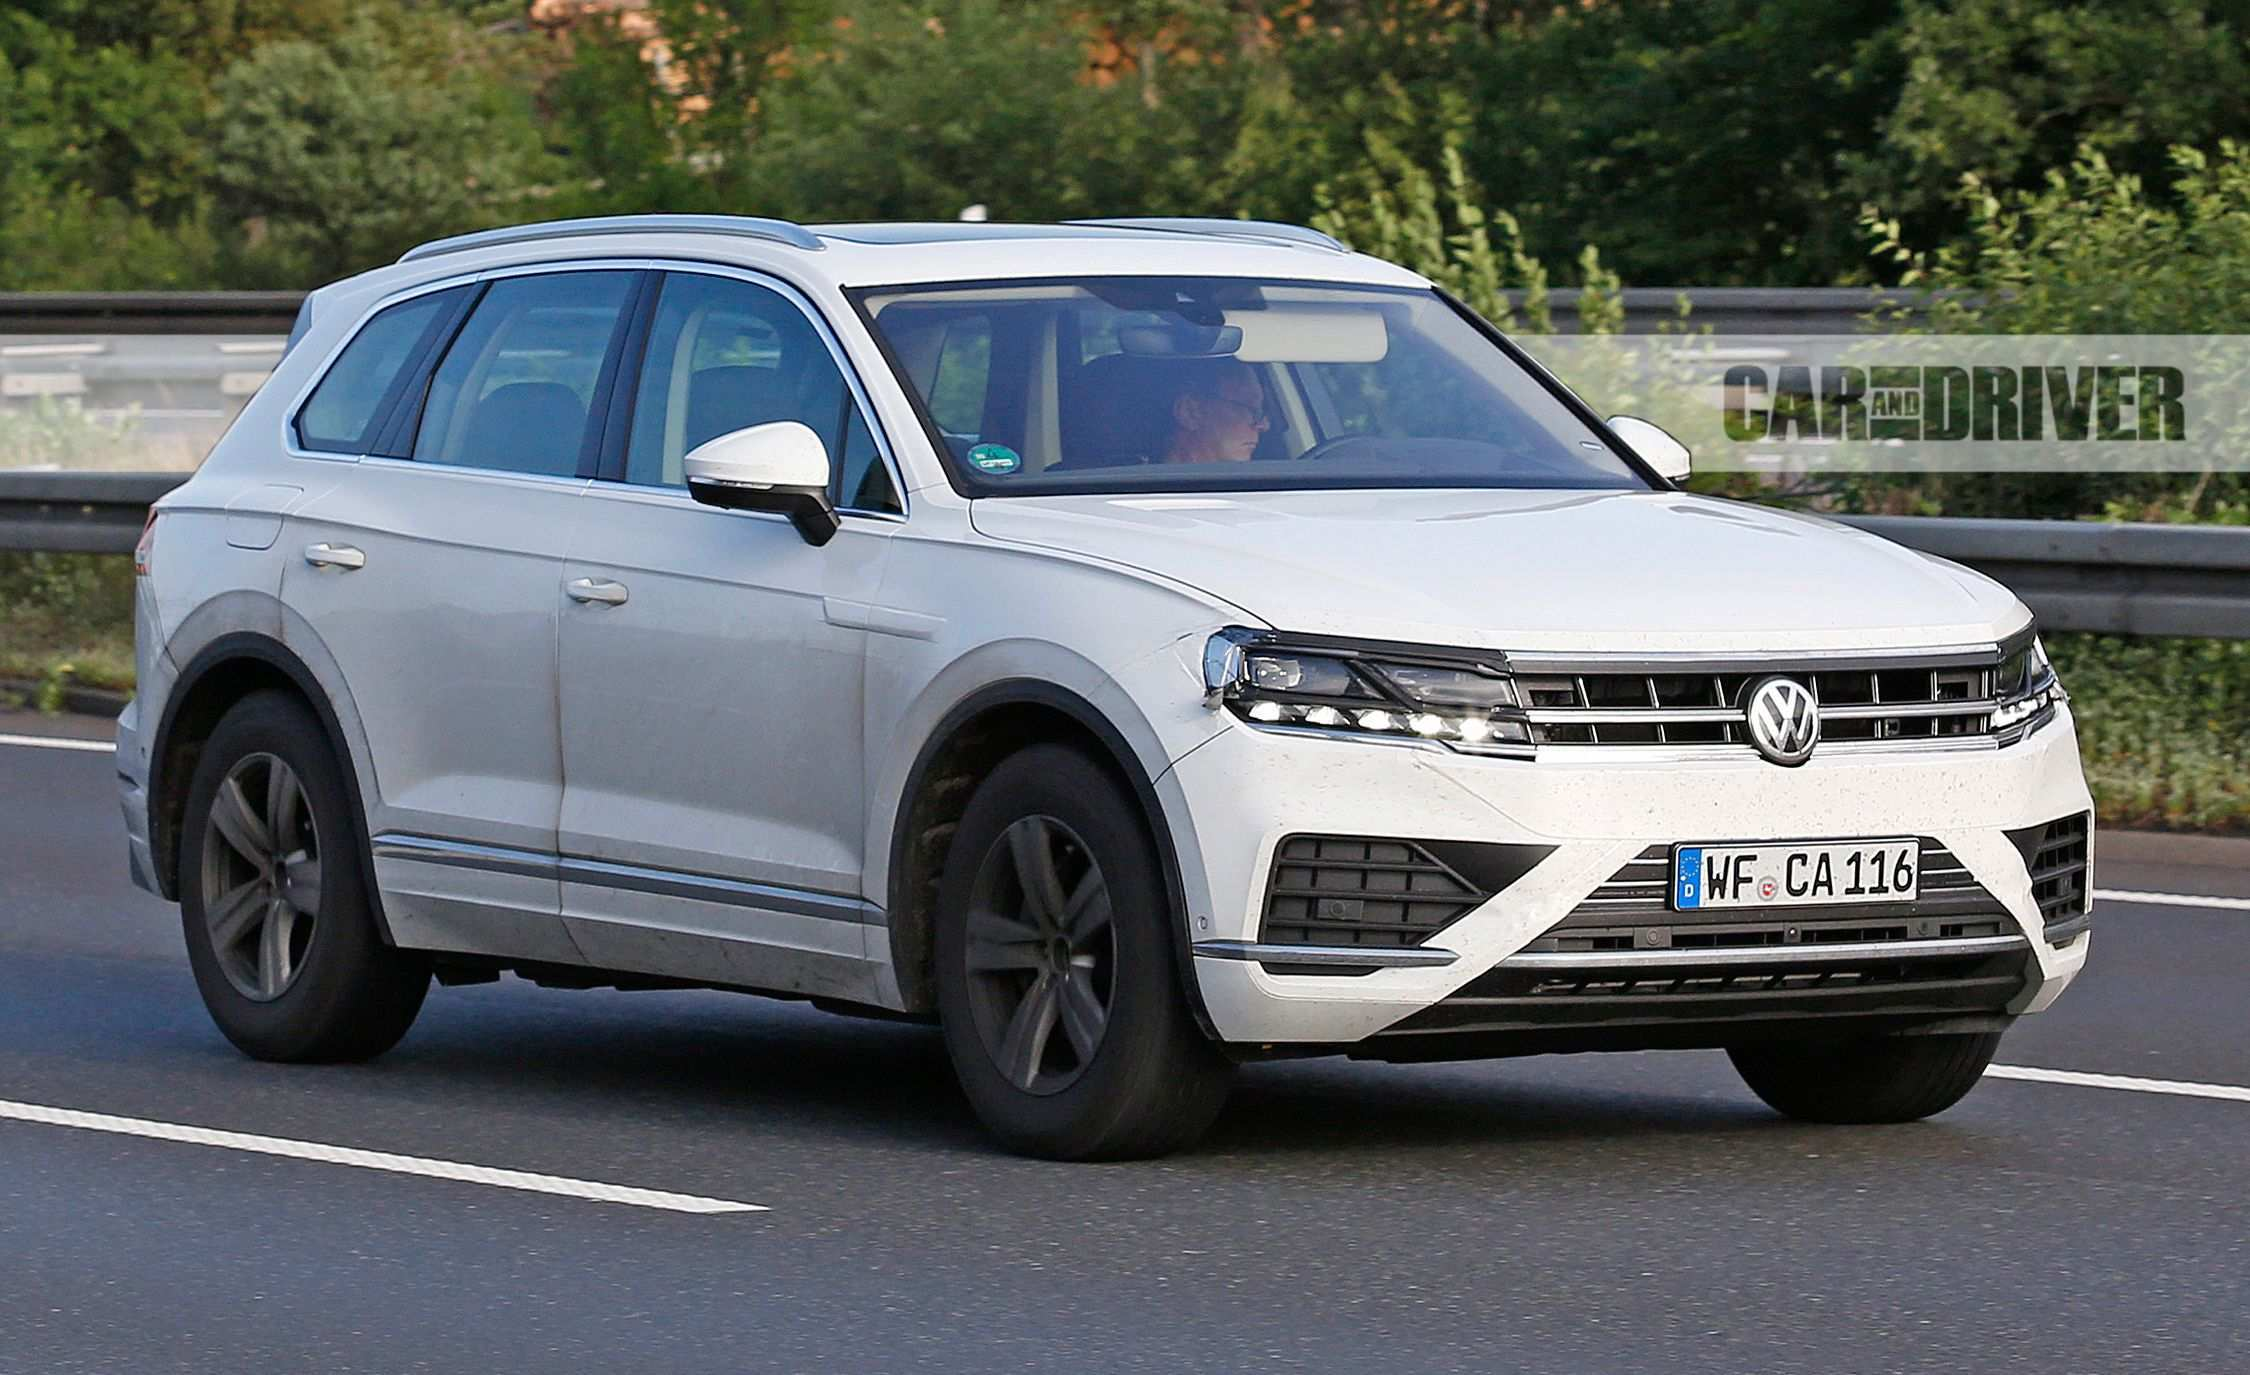 92 Best Review VW Touareg 2020 New Concept Speed Test for VW Touareg 2020 New Concept